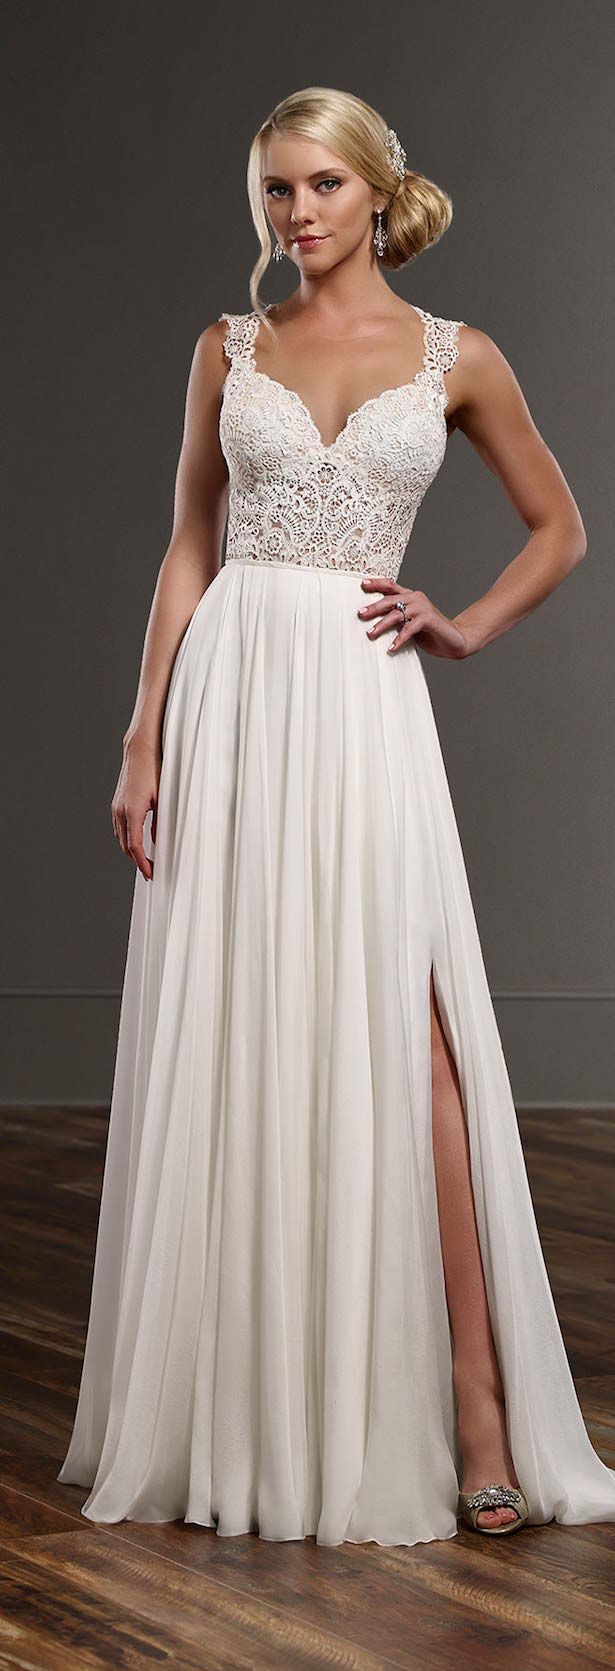 best 25 vow renewal dress ideas on pinterest casual wedding